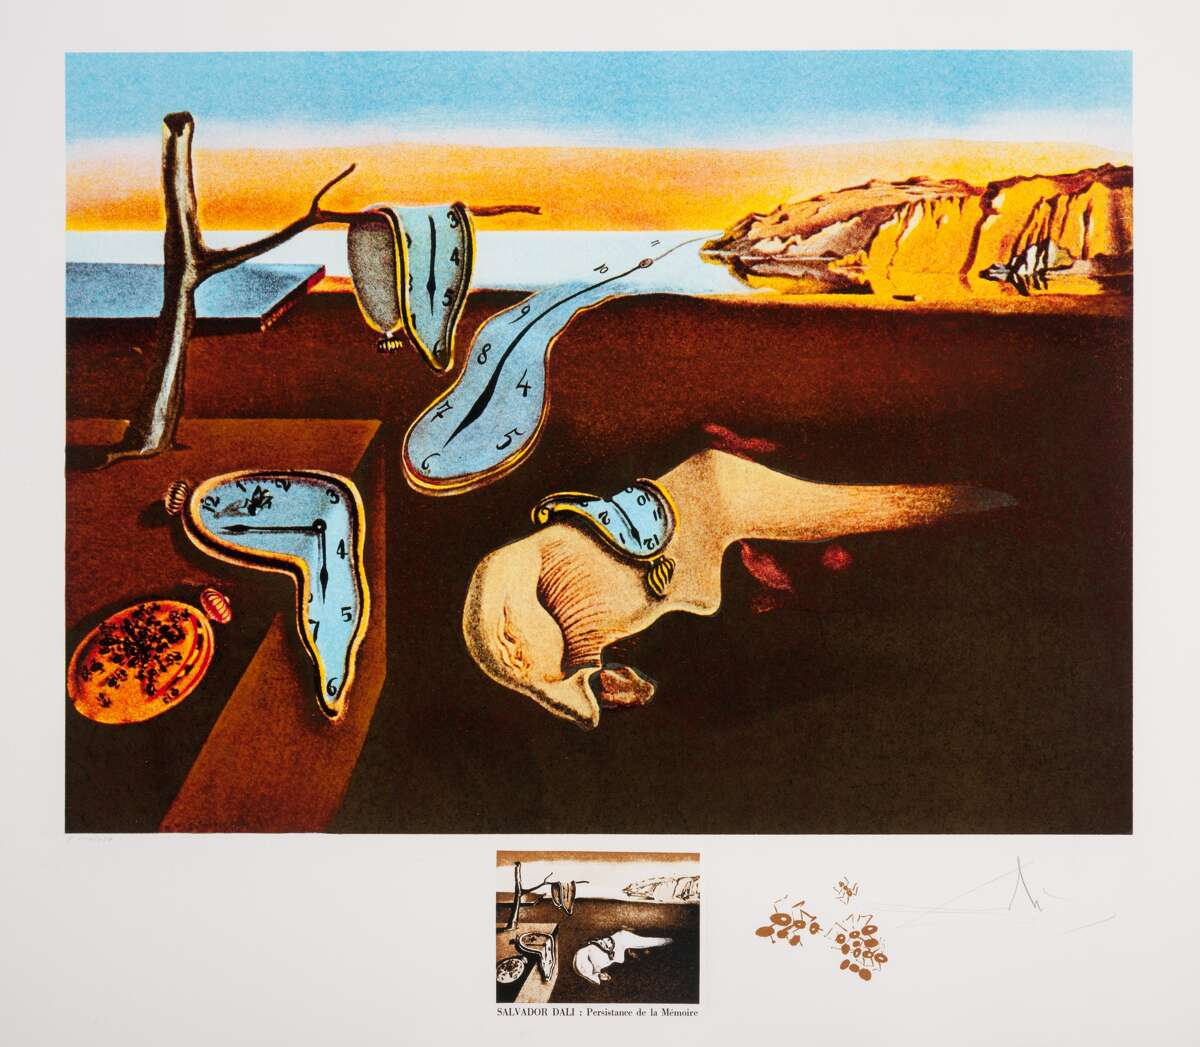 The Dalí17 Museum is now open in Monterey.